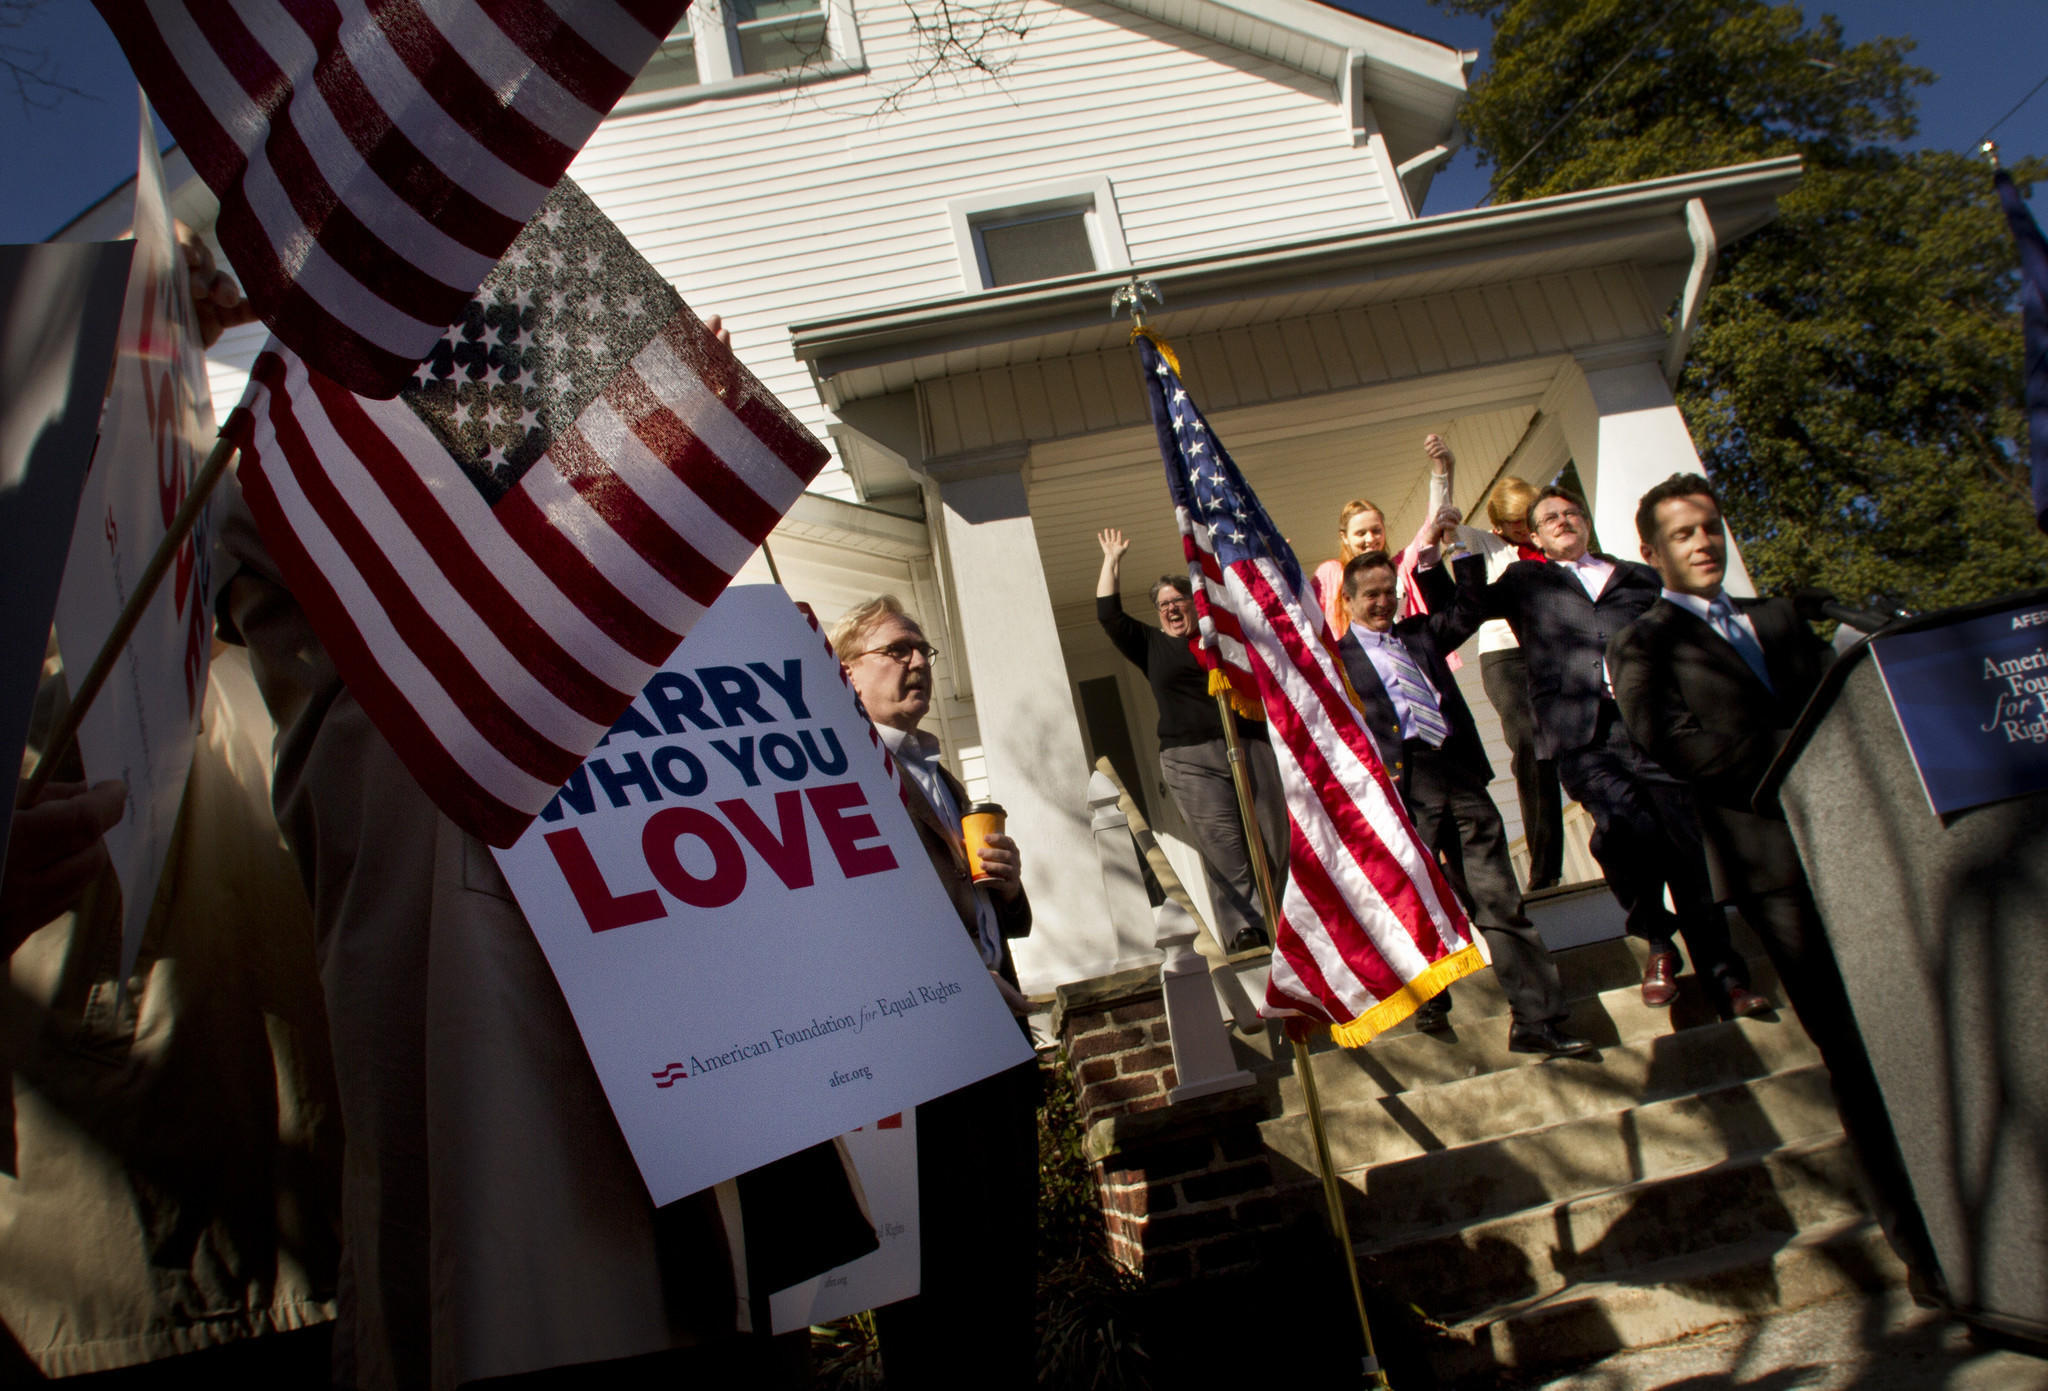 Plantiffs that challenged the constitutionality of a gay marriage law in Virginia arrive for a press conference Friday in Norfolk after the judge hearing the case ruled the Virginia law unconstitutional Thursday evening.